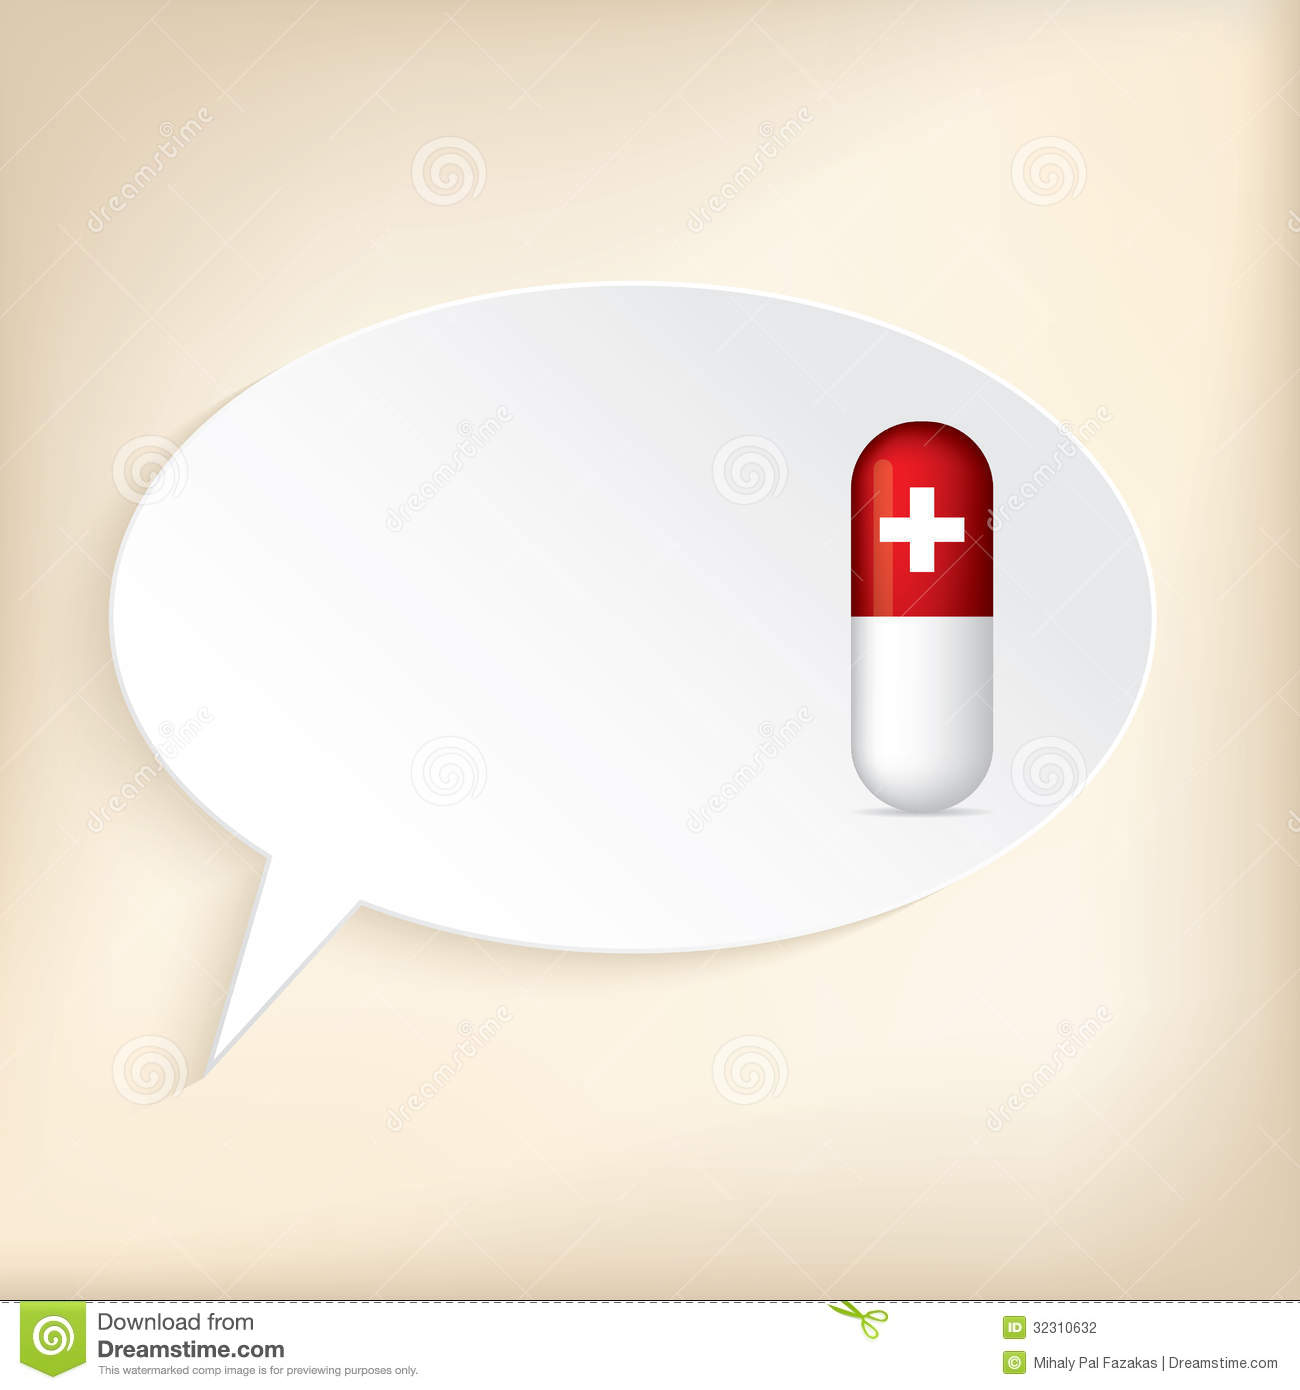 Medical wallpaper or background design with red pill and speech bubble